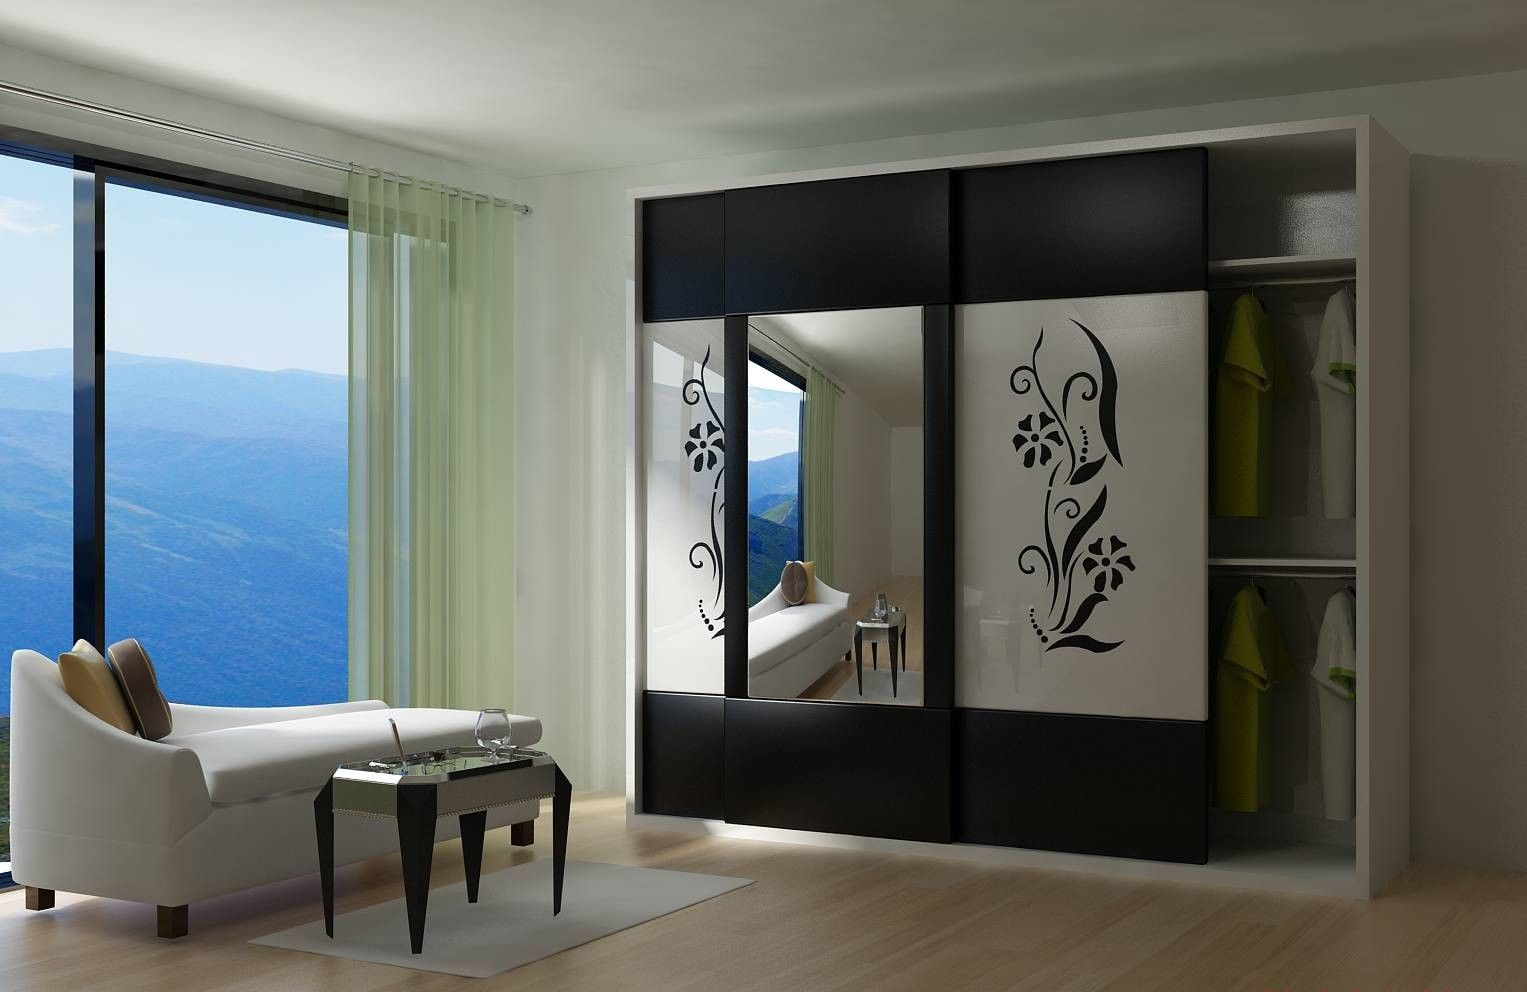 Modern wardrobe with sliding door and large mirror idea feat modern wardrobe with sliding door and large mirror idea feat luxury chaise lounge plus black side vtopaller Image collections